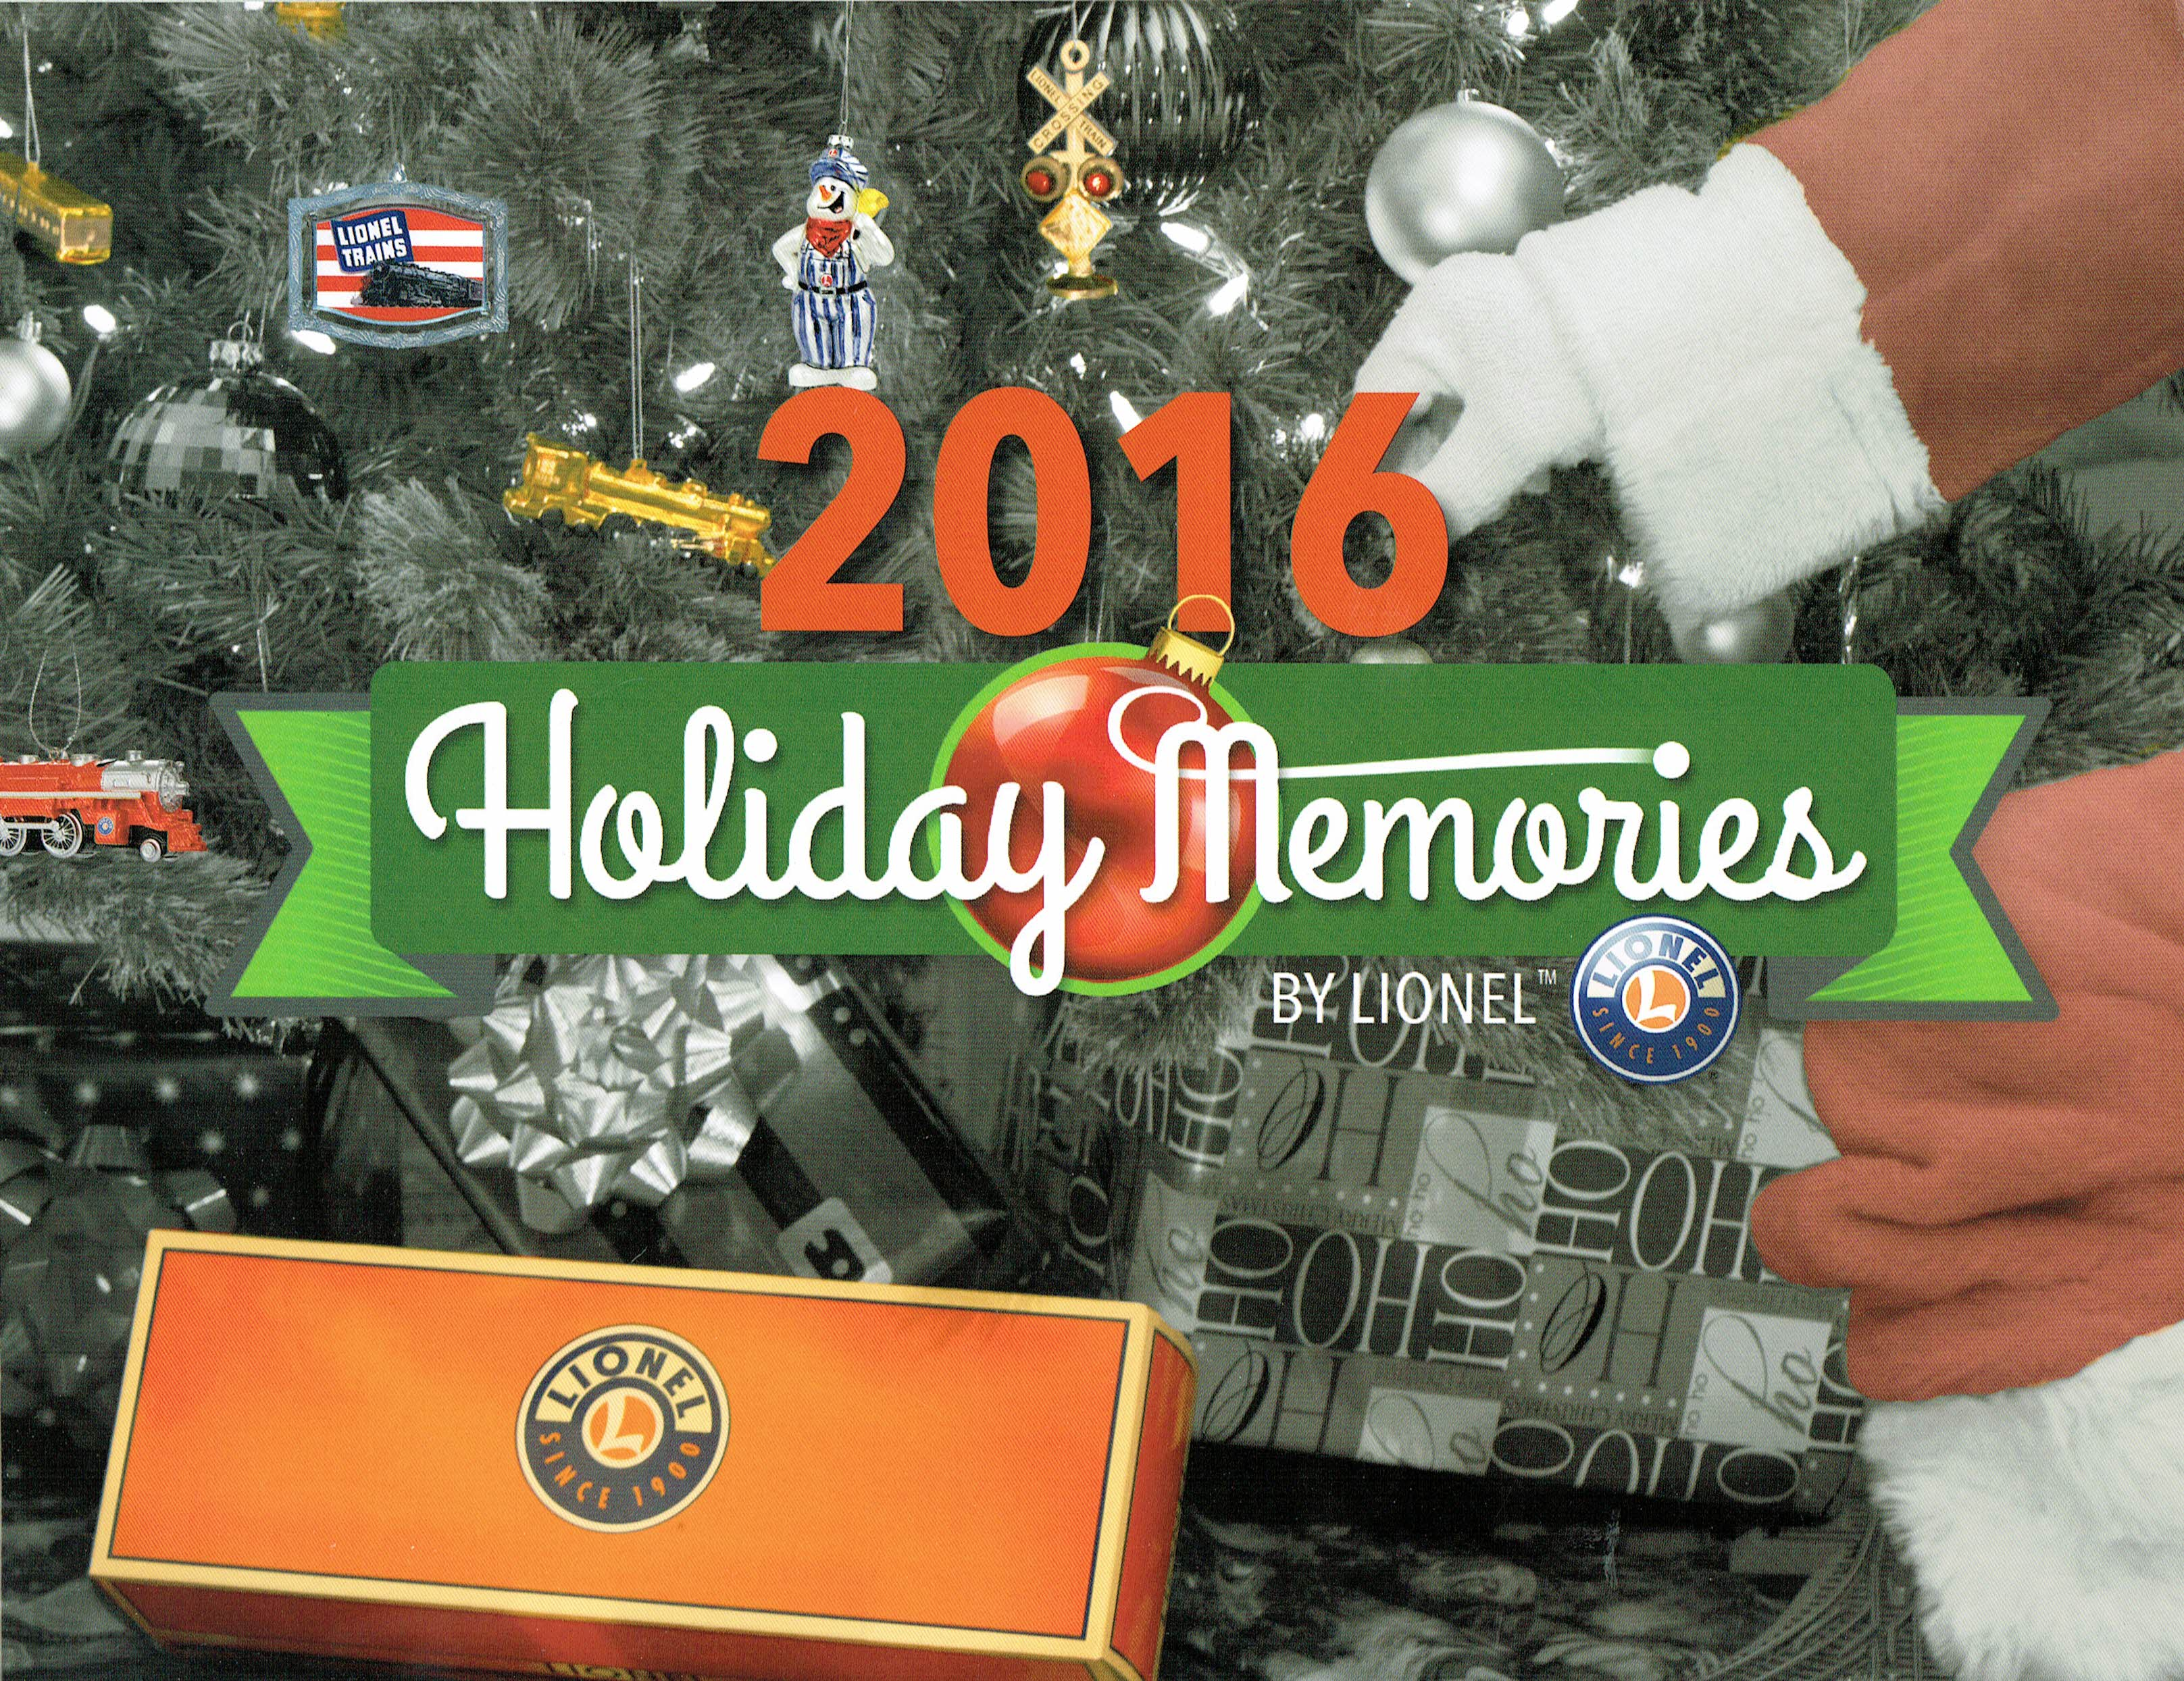 Lionel 2015 Holiday Memories Catalog image